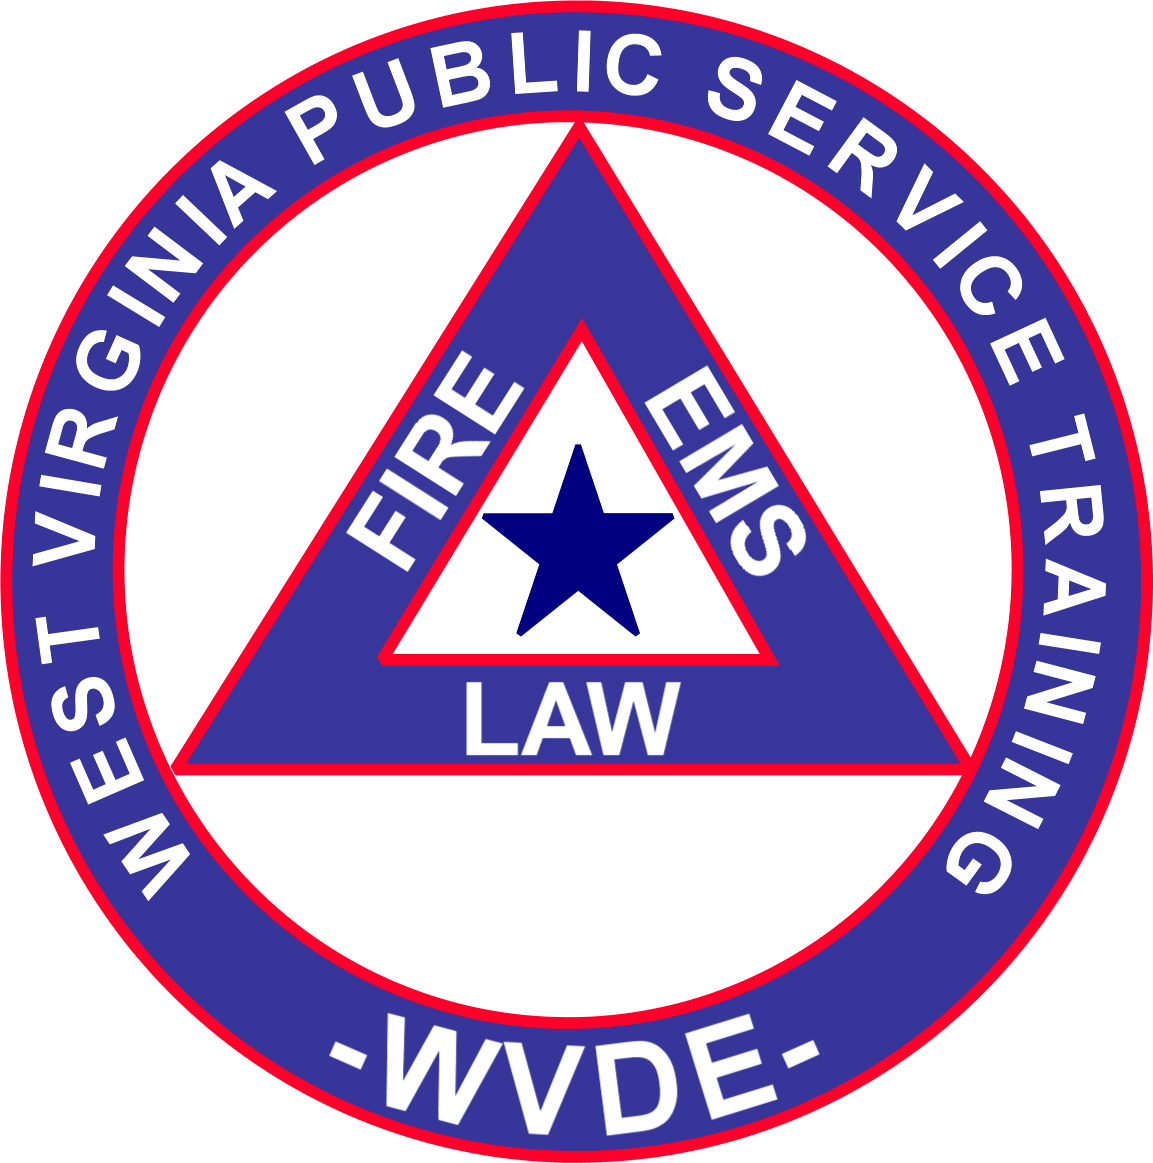 About West Virginia Public Service Training